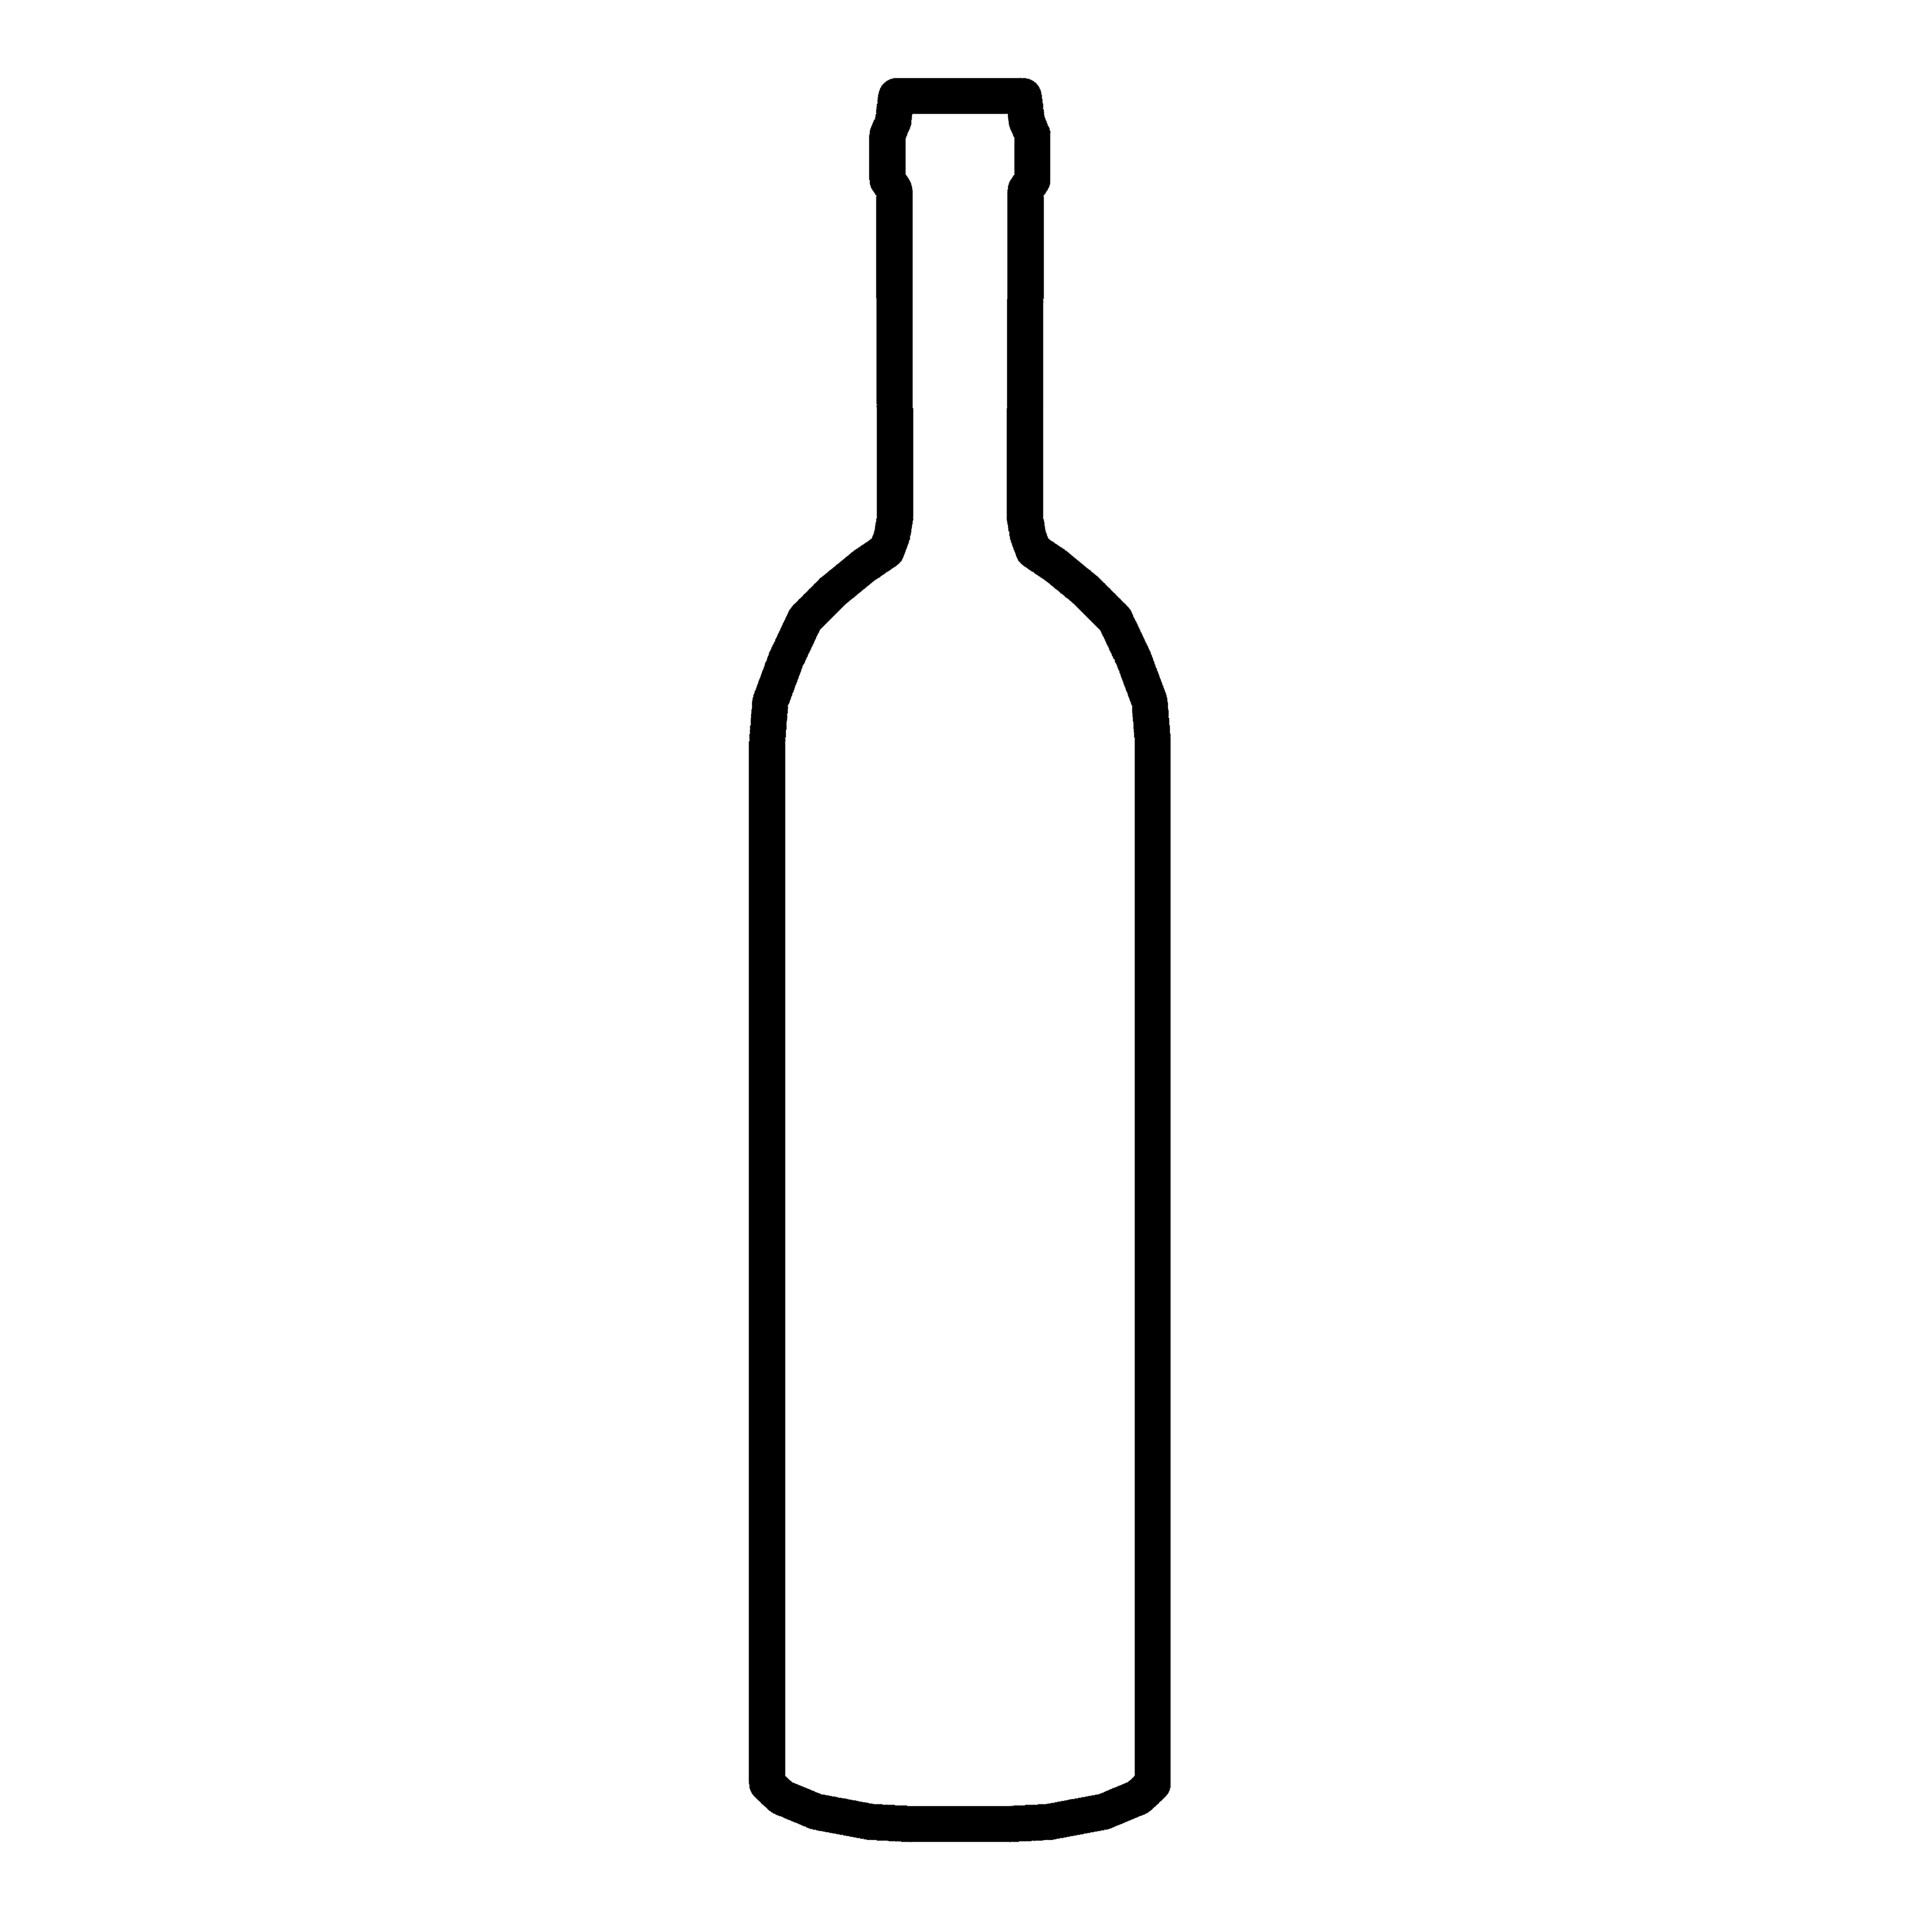 wine bottle silhouette vector at getdrawings com free for personal rh getdrawings com wine bottle vector silhouette wine bottle vector png